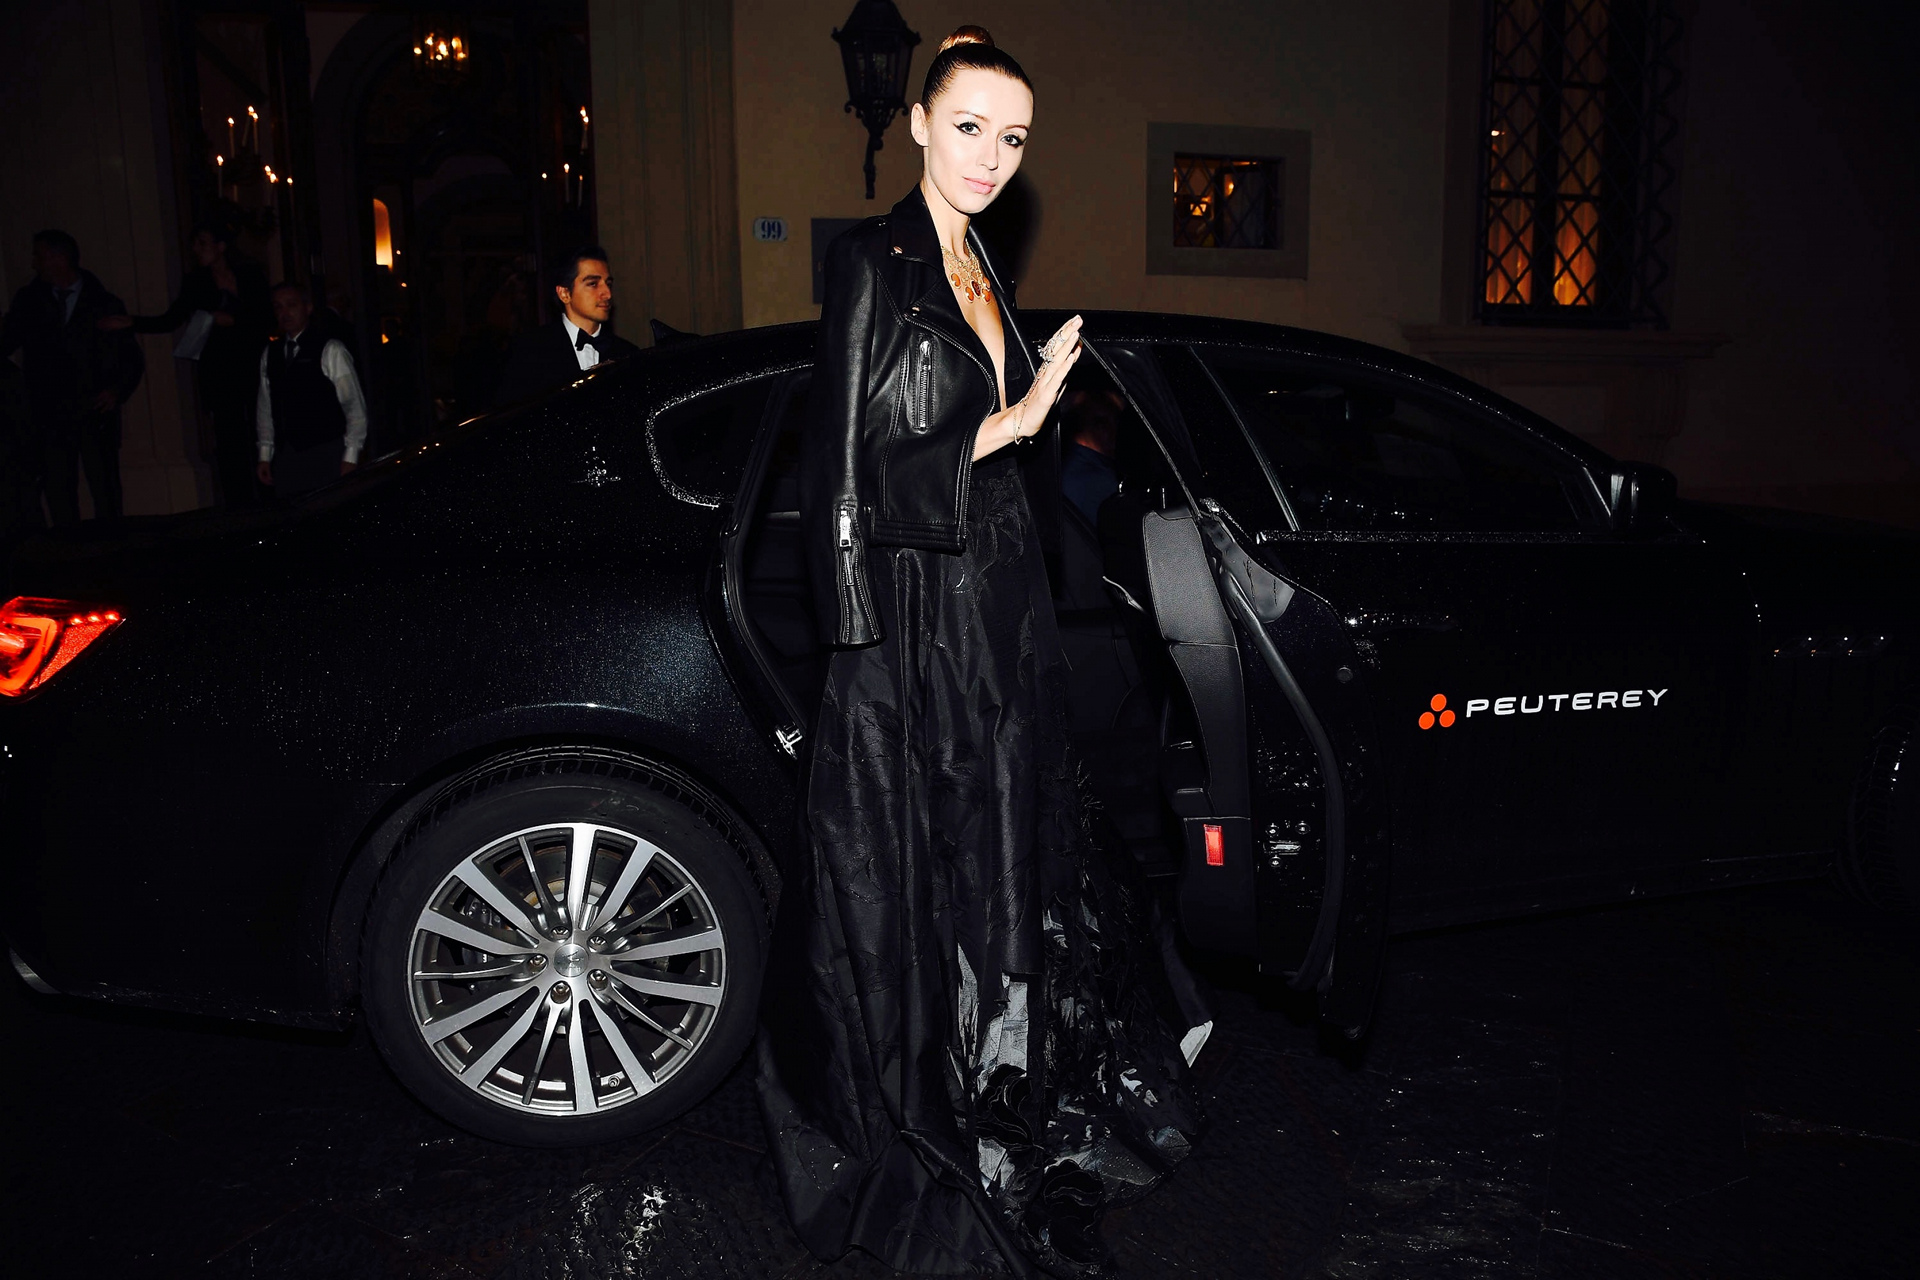 Nataly Osmann with the Quattroporte arrives at the INFERNO Premiere © Fiat Chrysler Automobiles N.V.